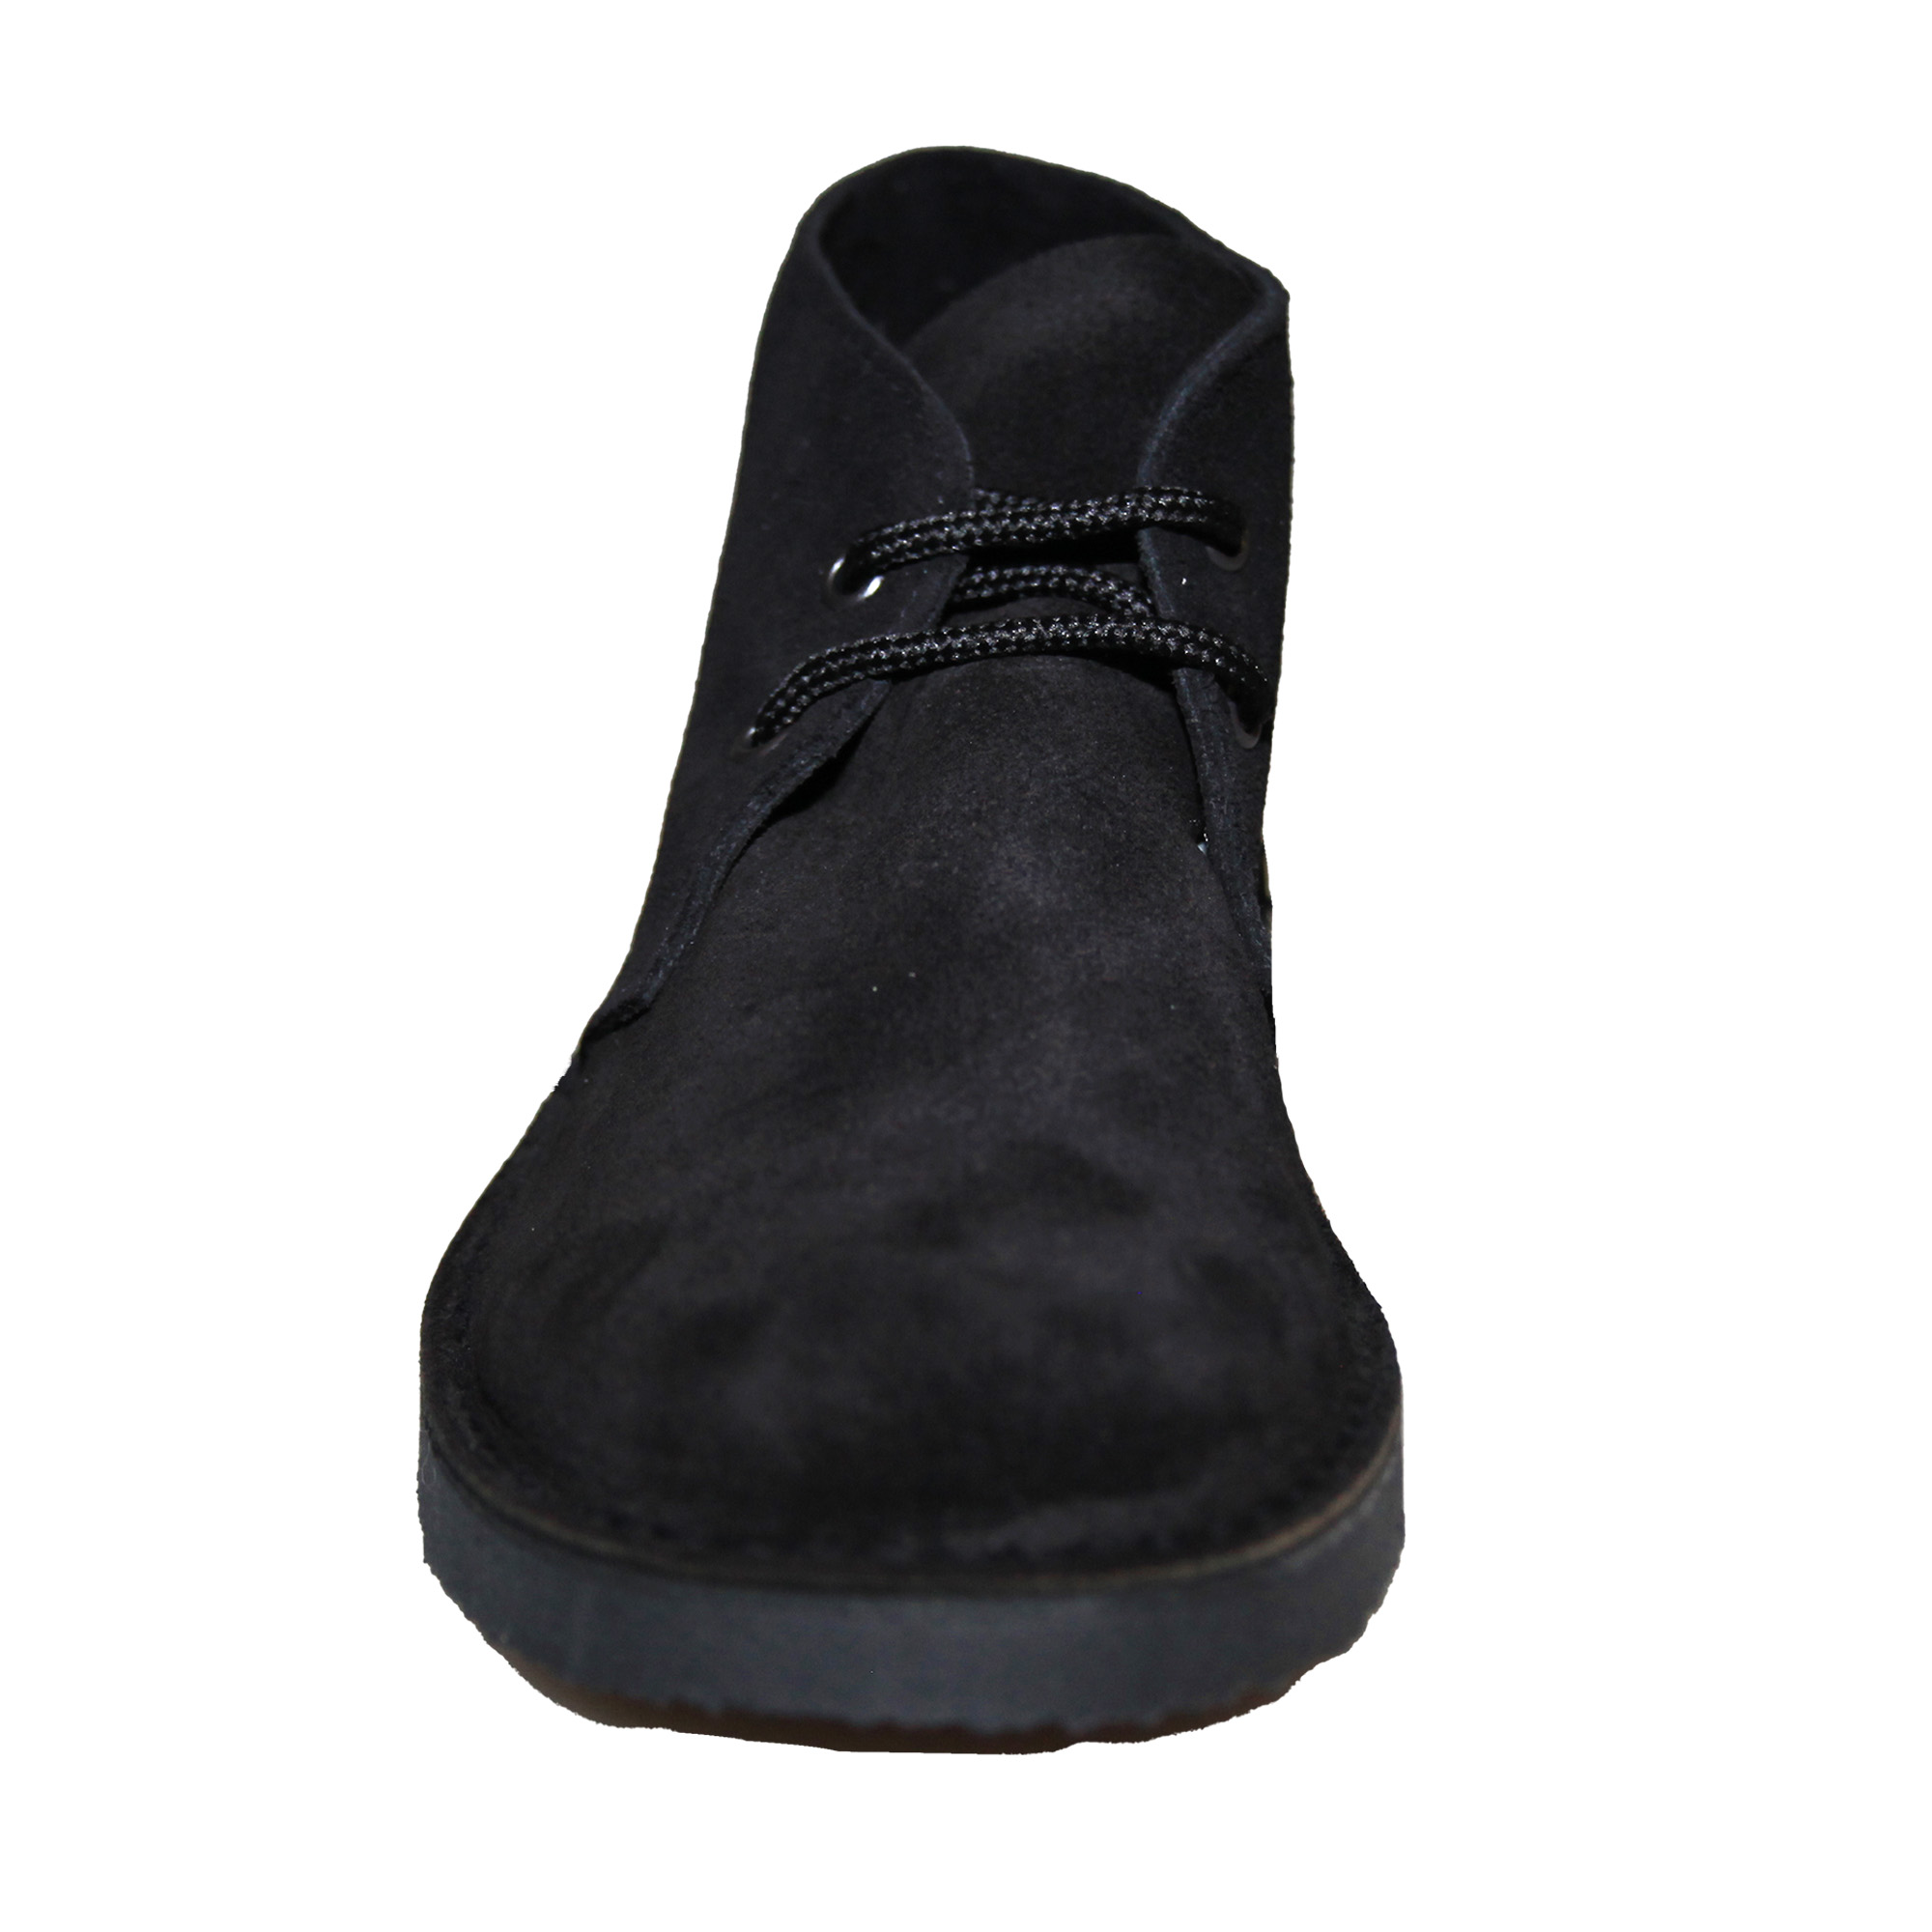 Shop eBay for great deals on VANS Women's Suede Shoes. You'll find new or used products in VANS Women's Suede Shoes on eBay. Free shipping on selected items.